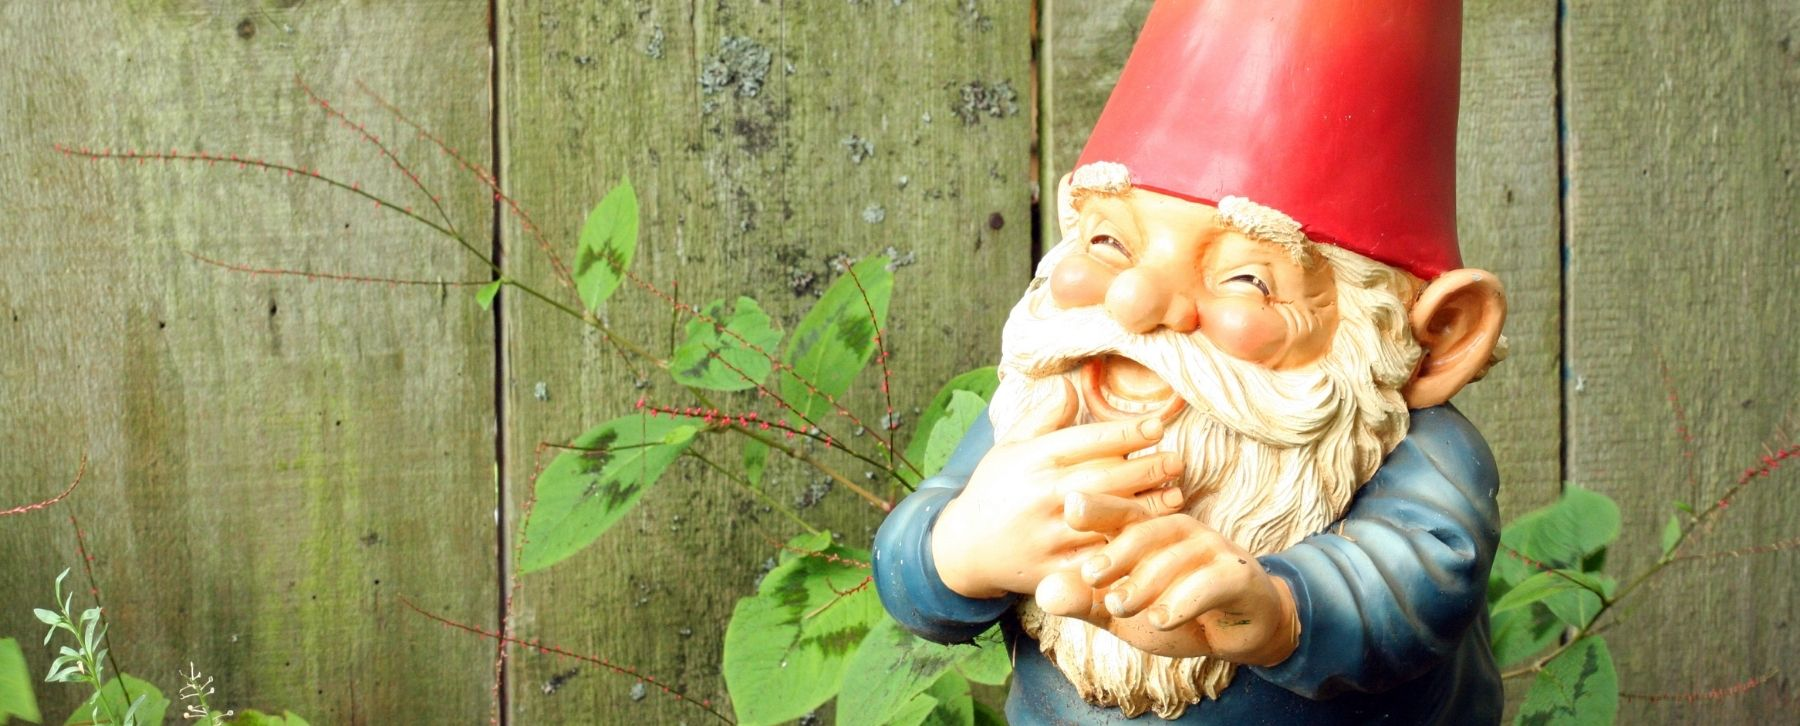 There's No Place Like Gnome with These Delightful Garden Pieces.